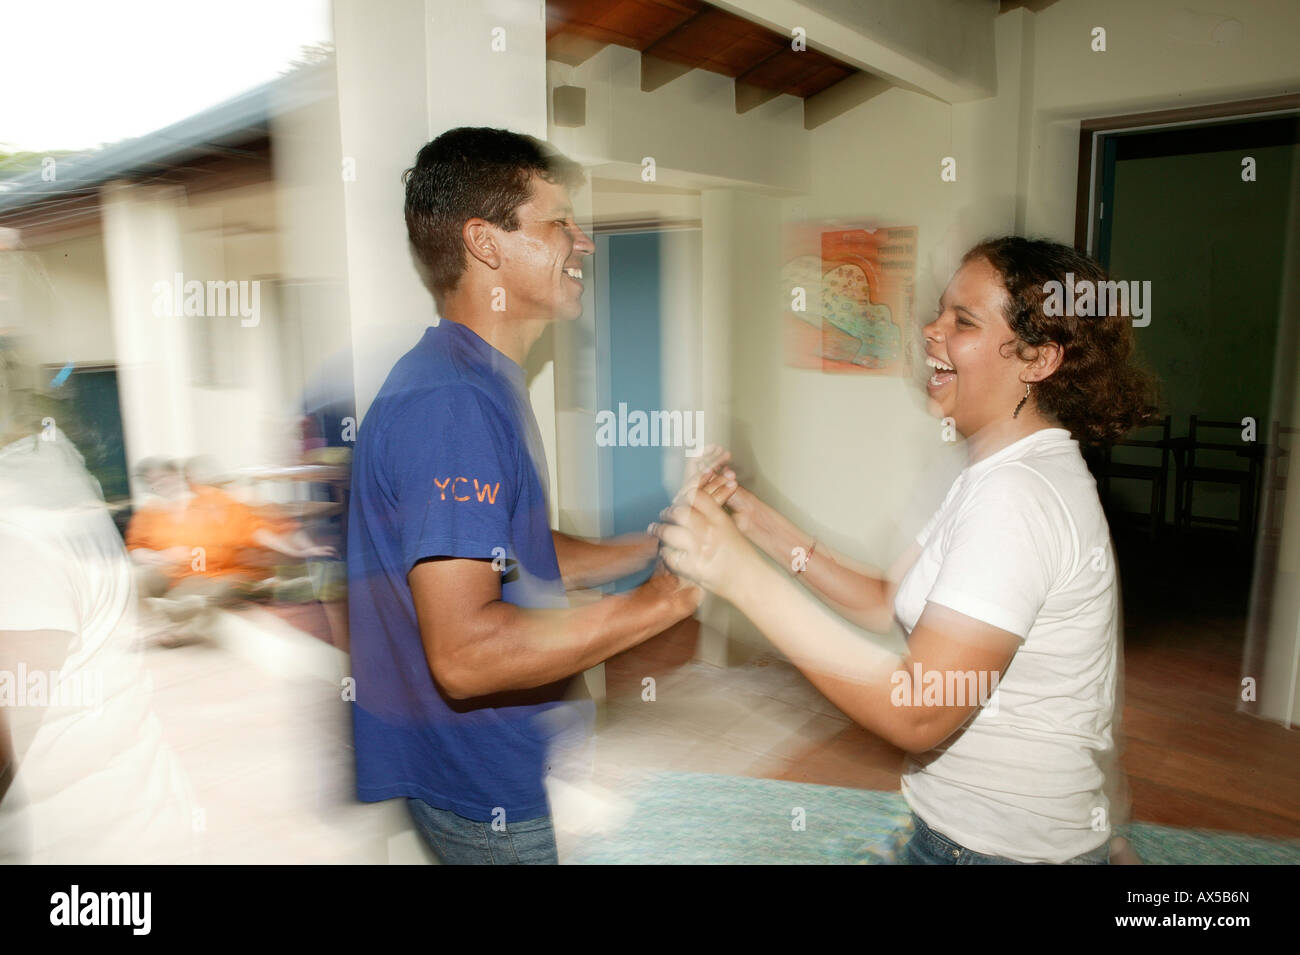 Young woman and man dancing boisterously in front of a house, Asuncion, Paraguay, South America - Stock Image